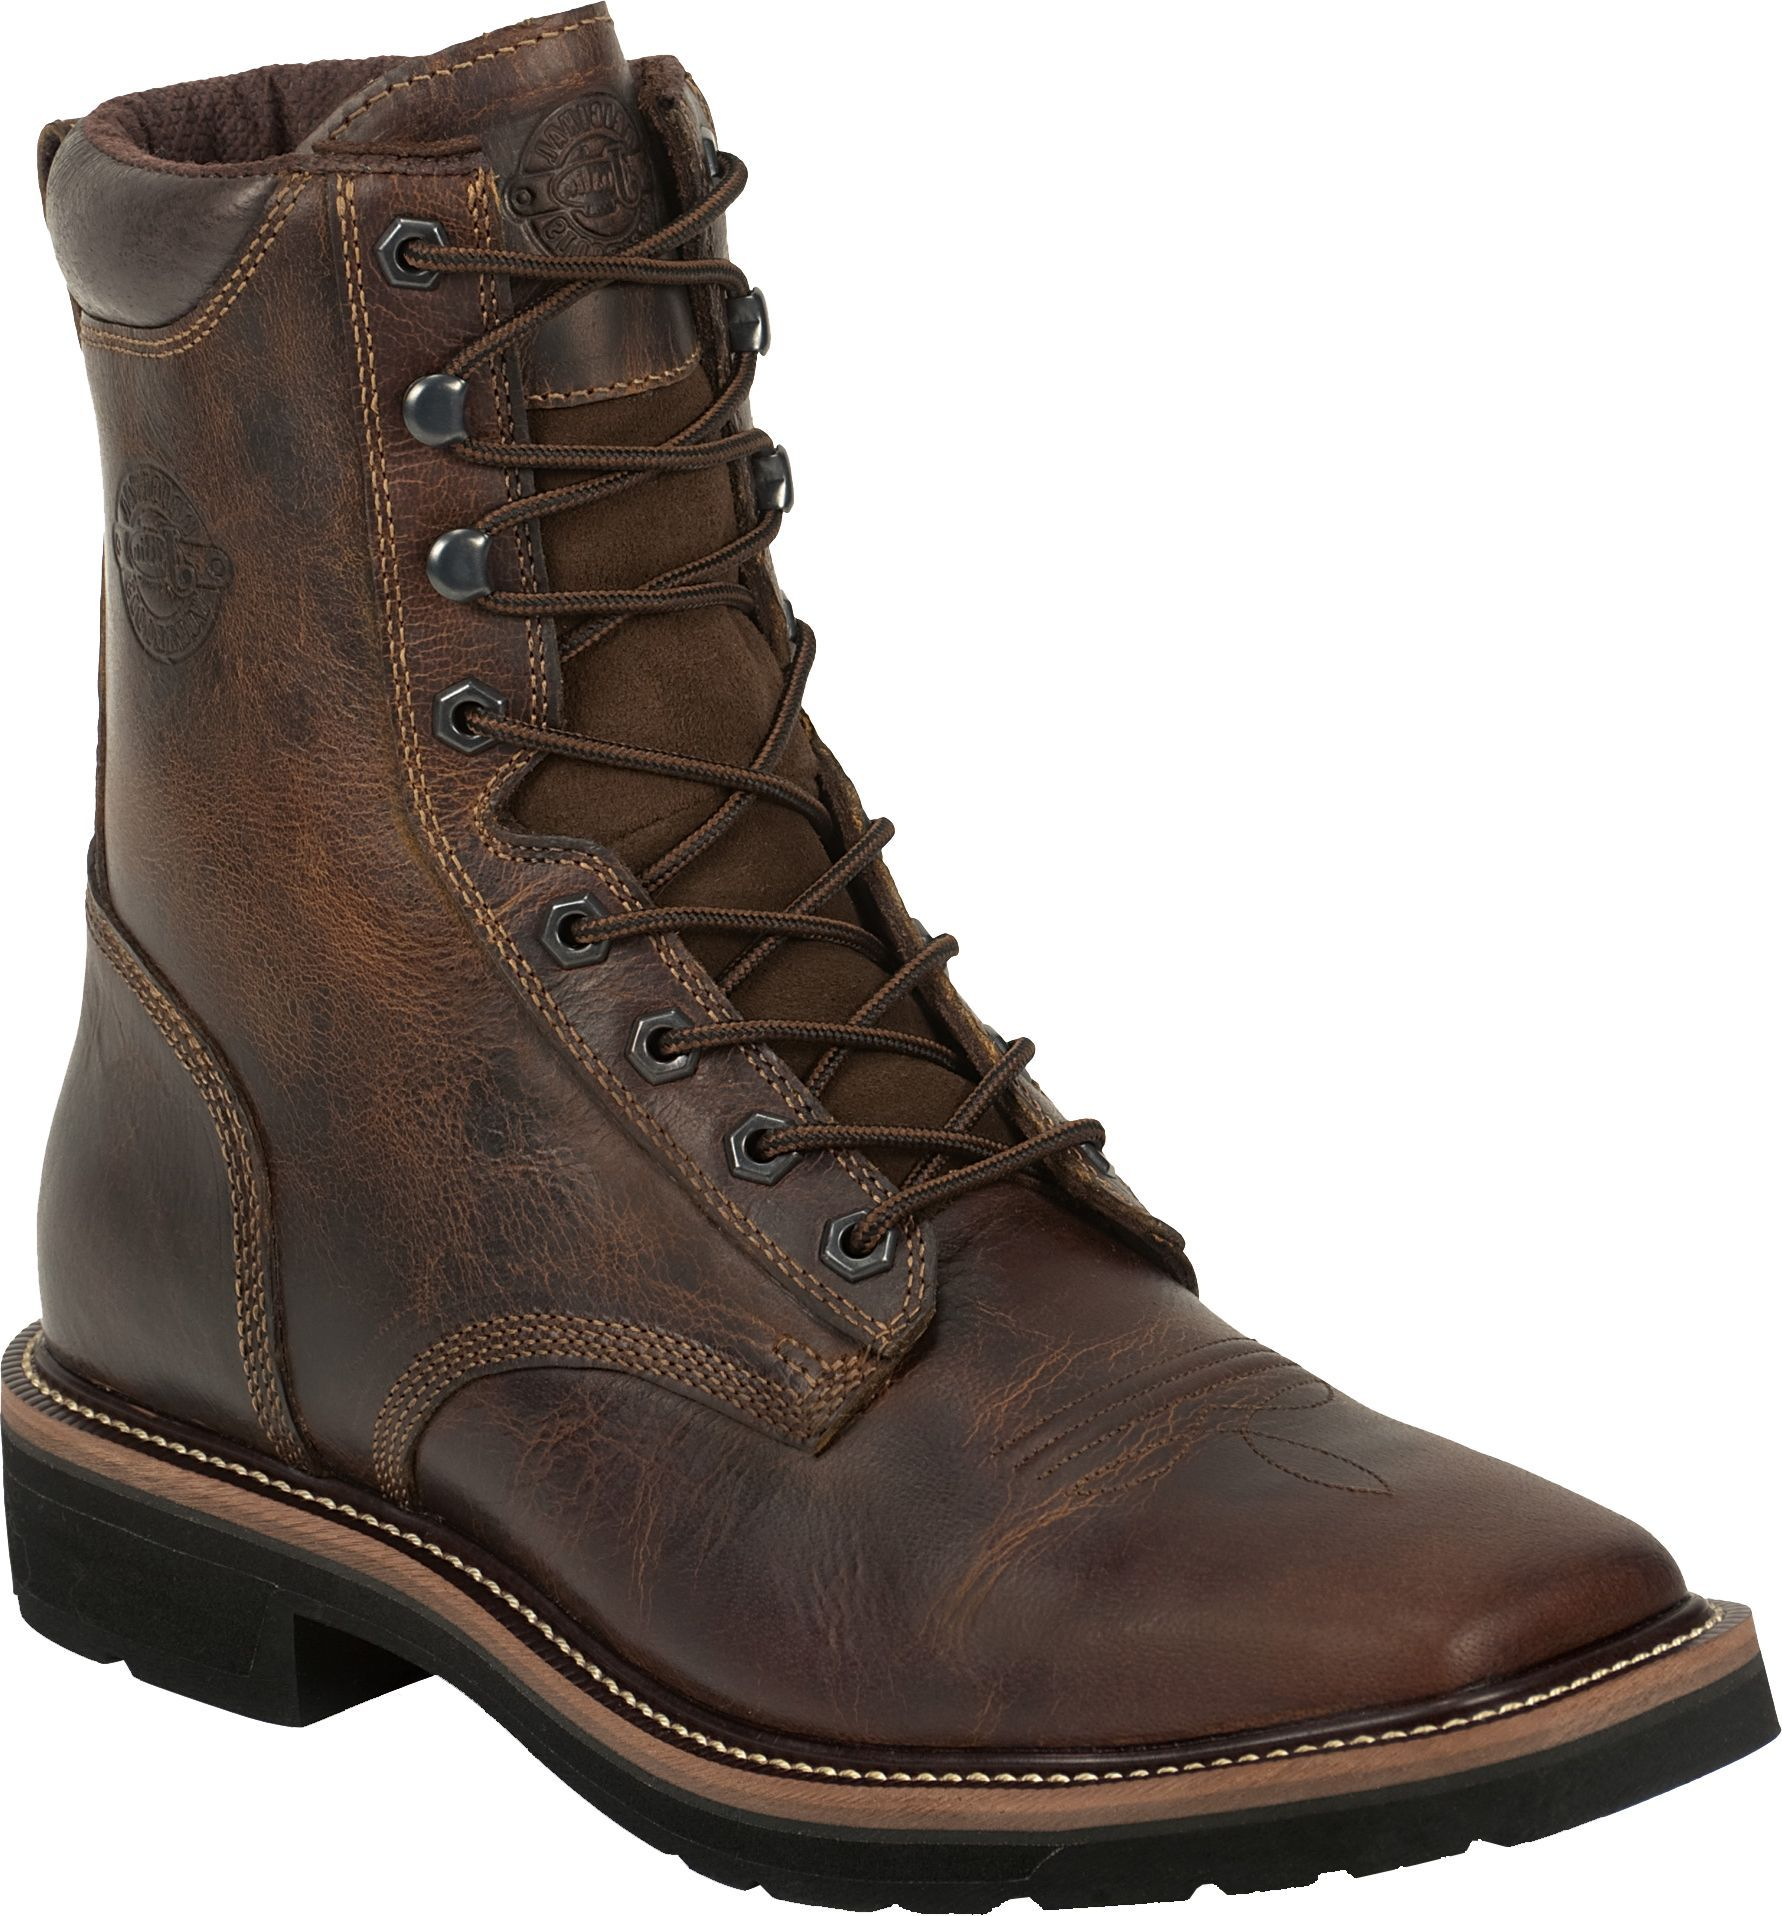 c8a57294c66 Justin Boots Men's Pulley 8'' Work Boots, Size: 6.0, Tan   Products ...